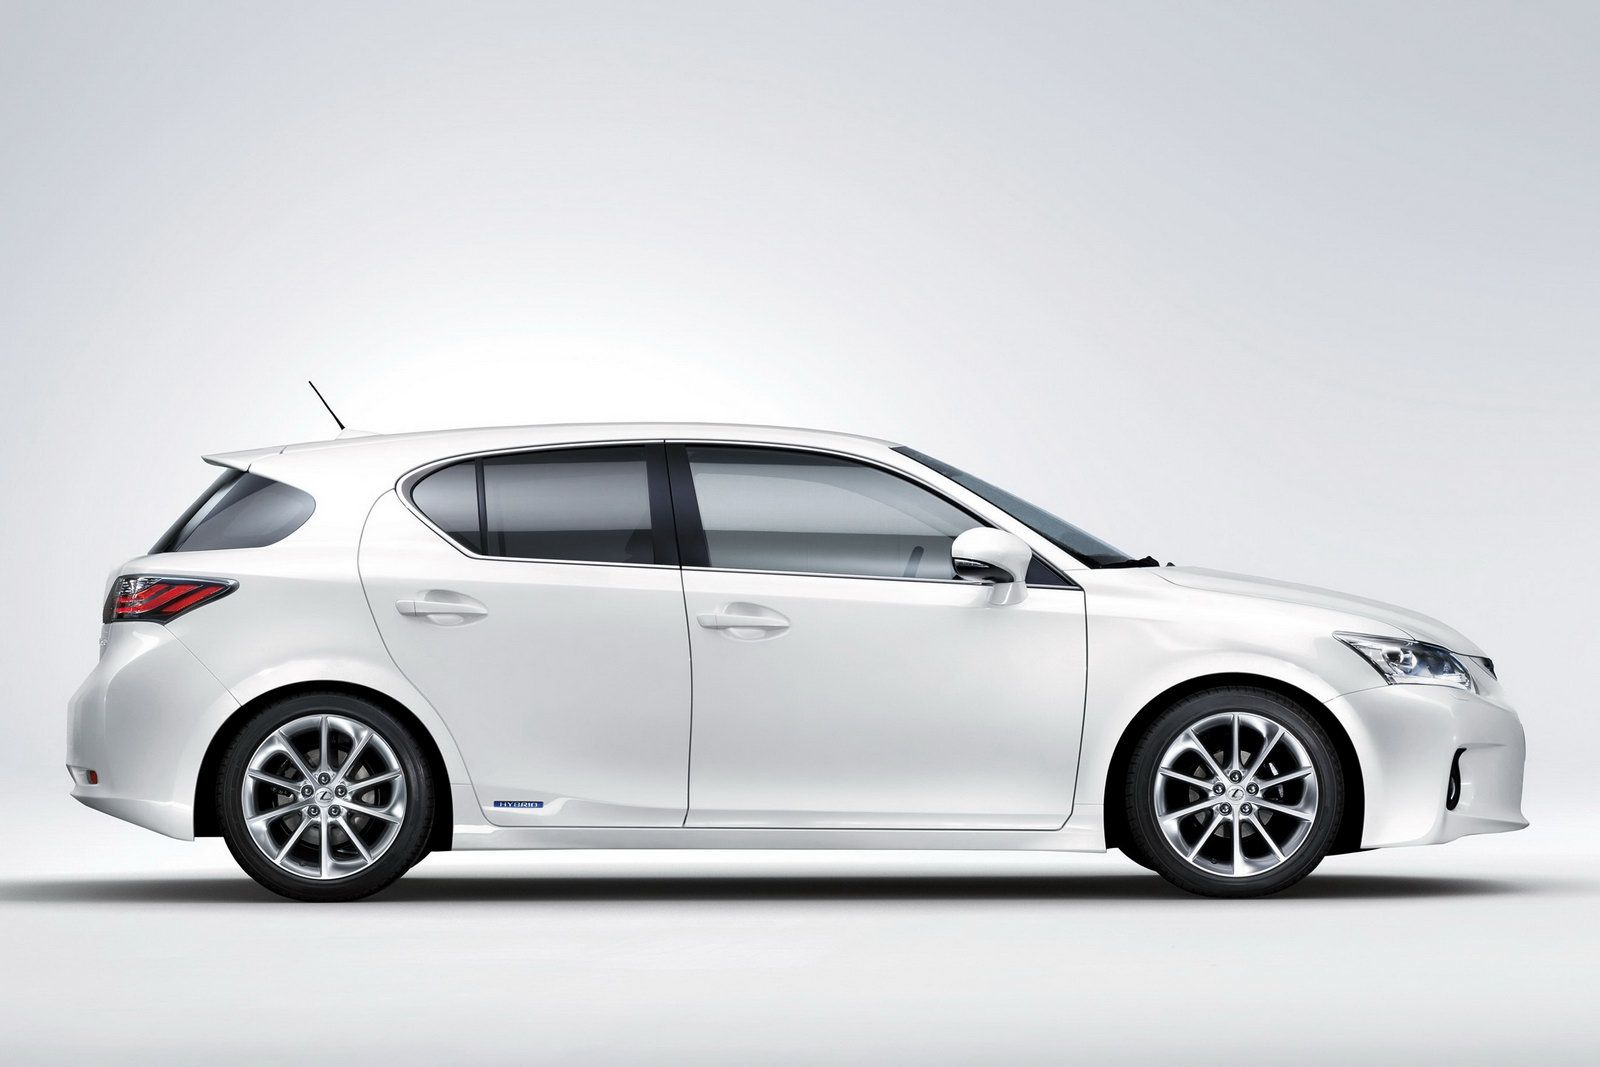 New lexus ct 200h official details and photos leaked lexus ct 200h 2011 img_4